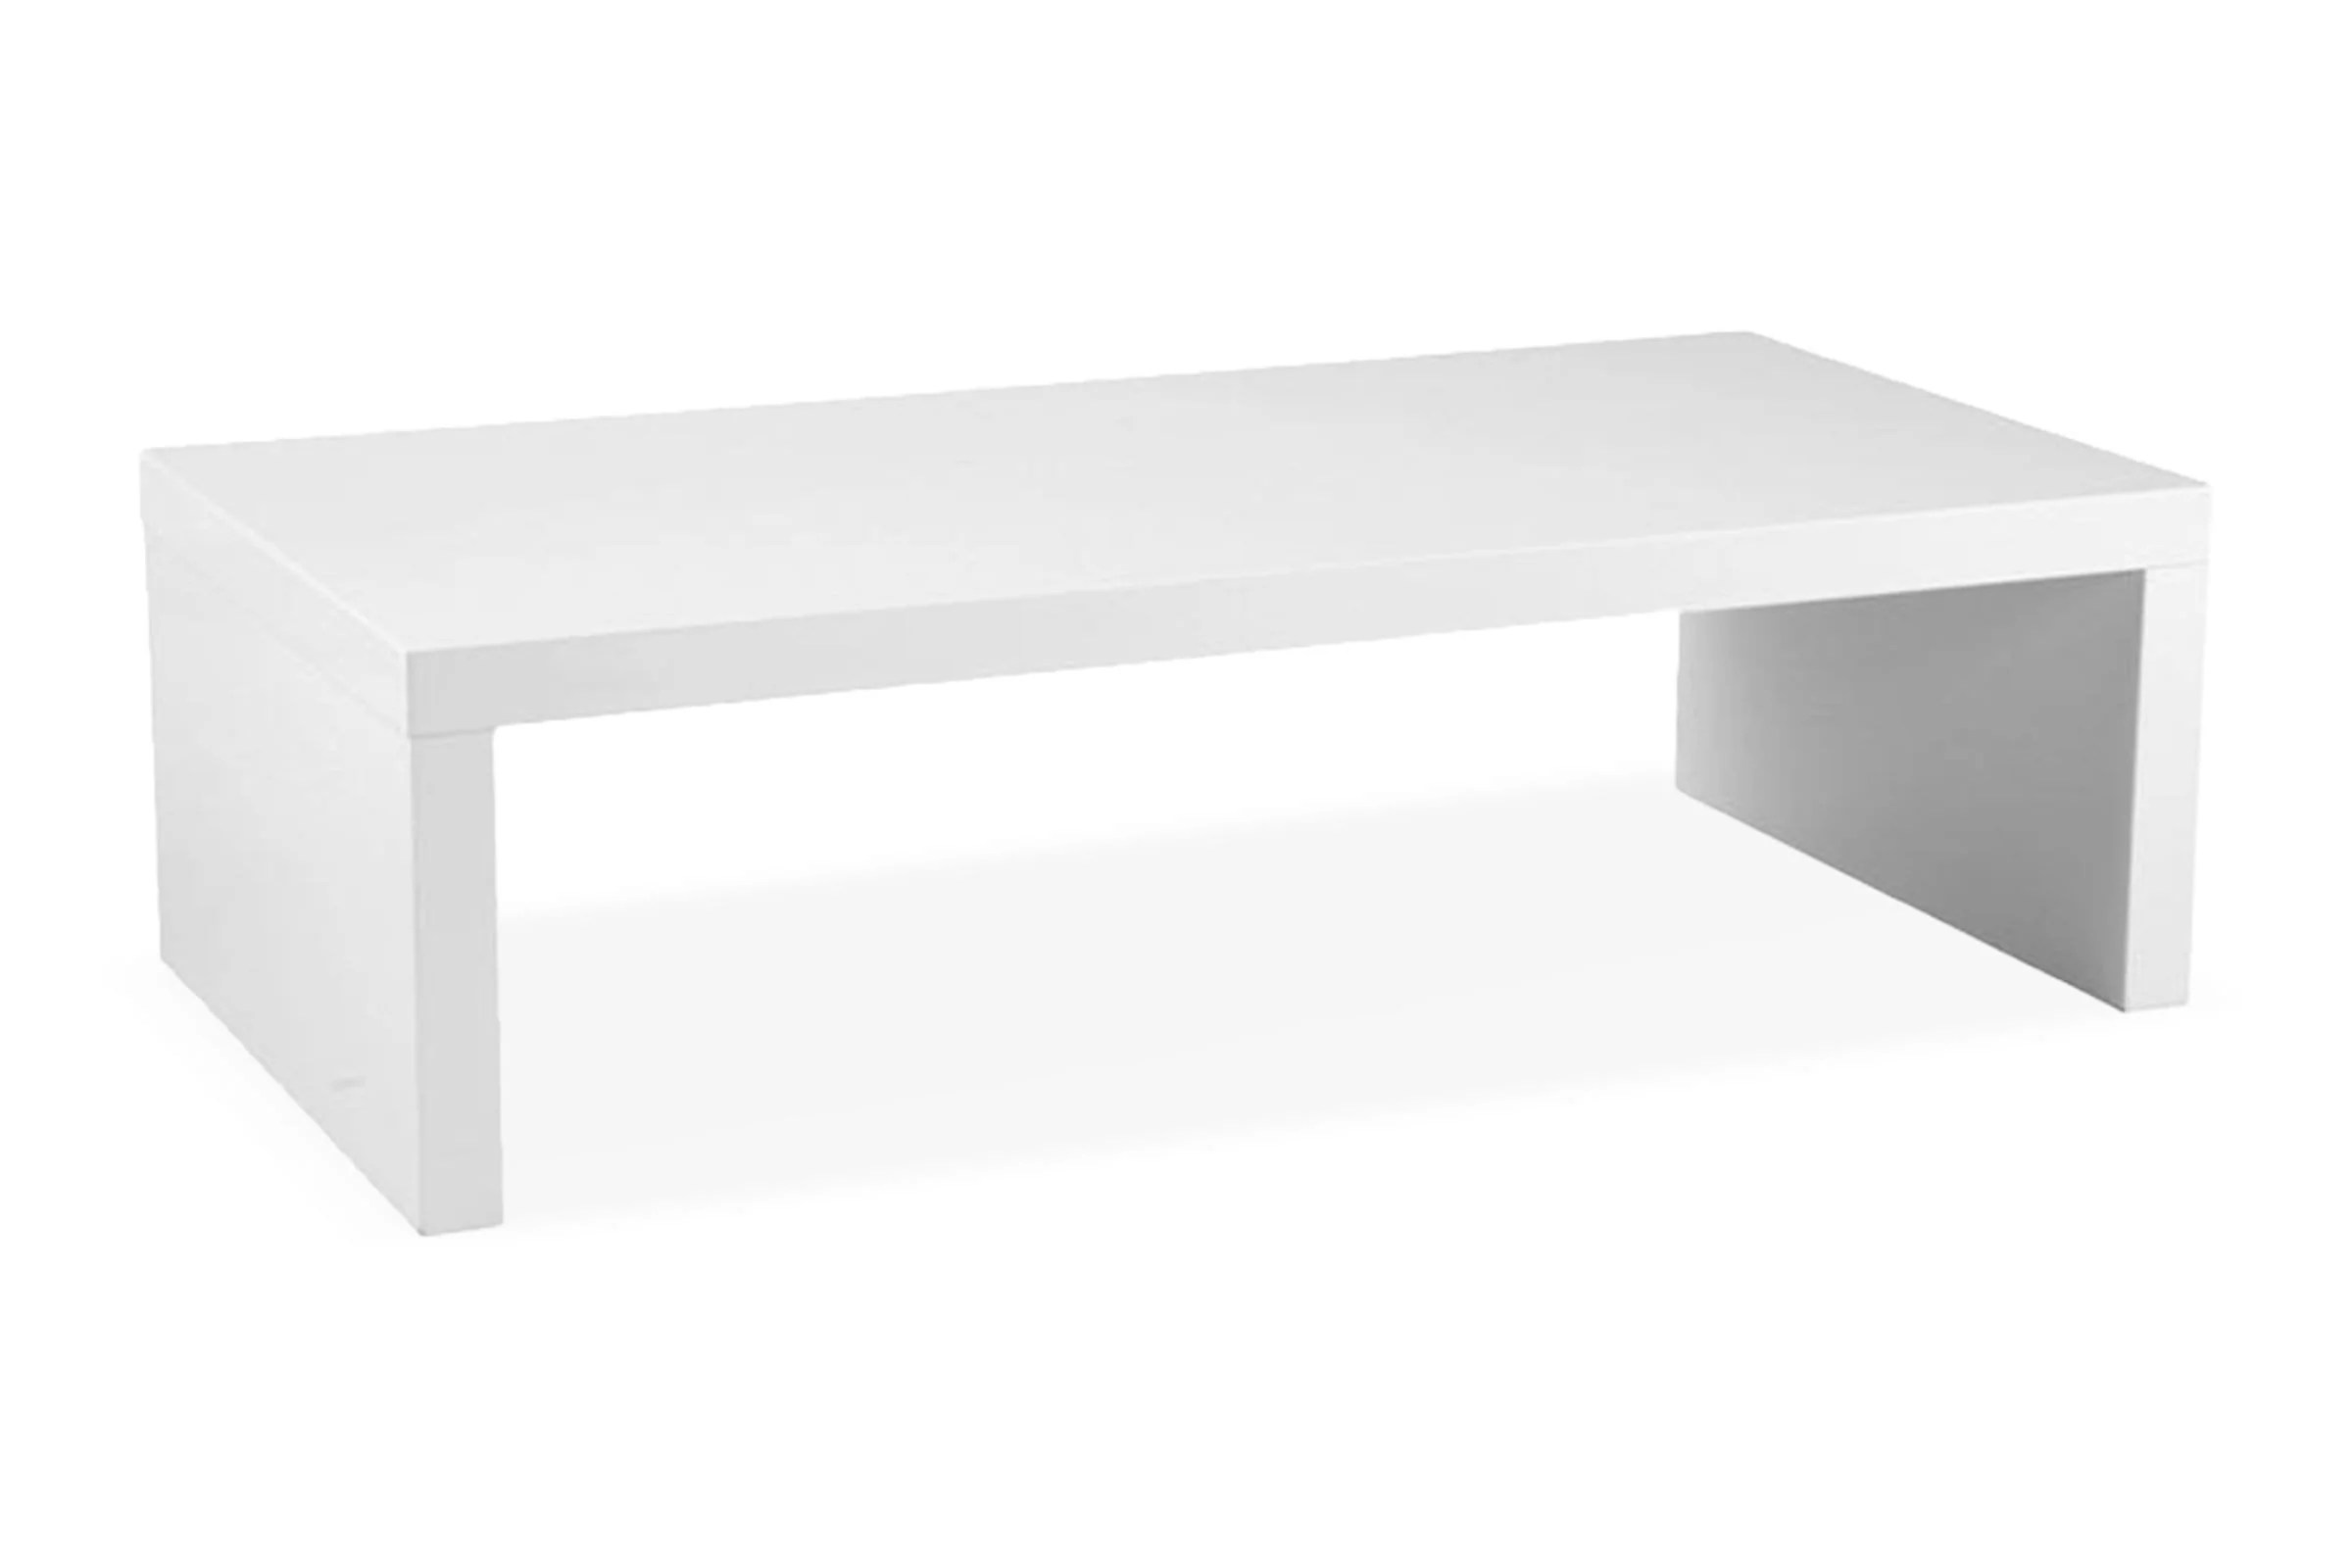 cloverdale coffee table white lacquer